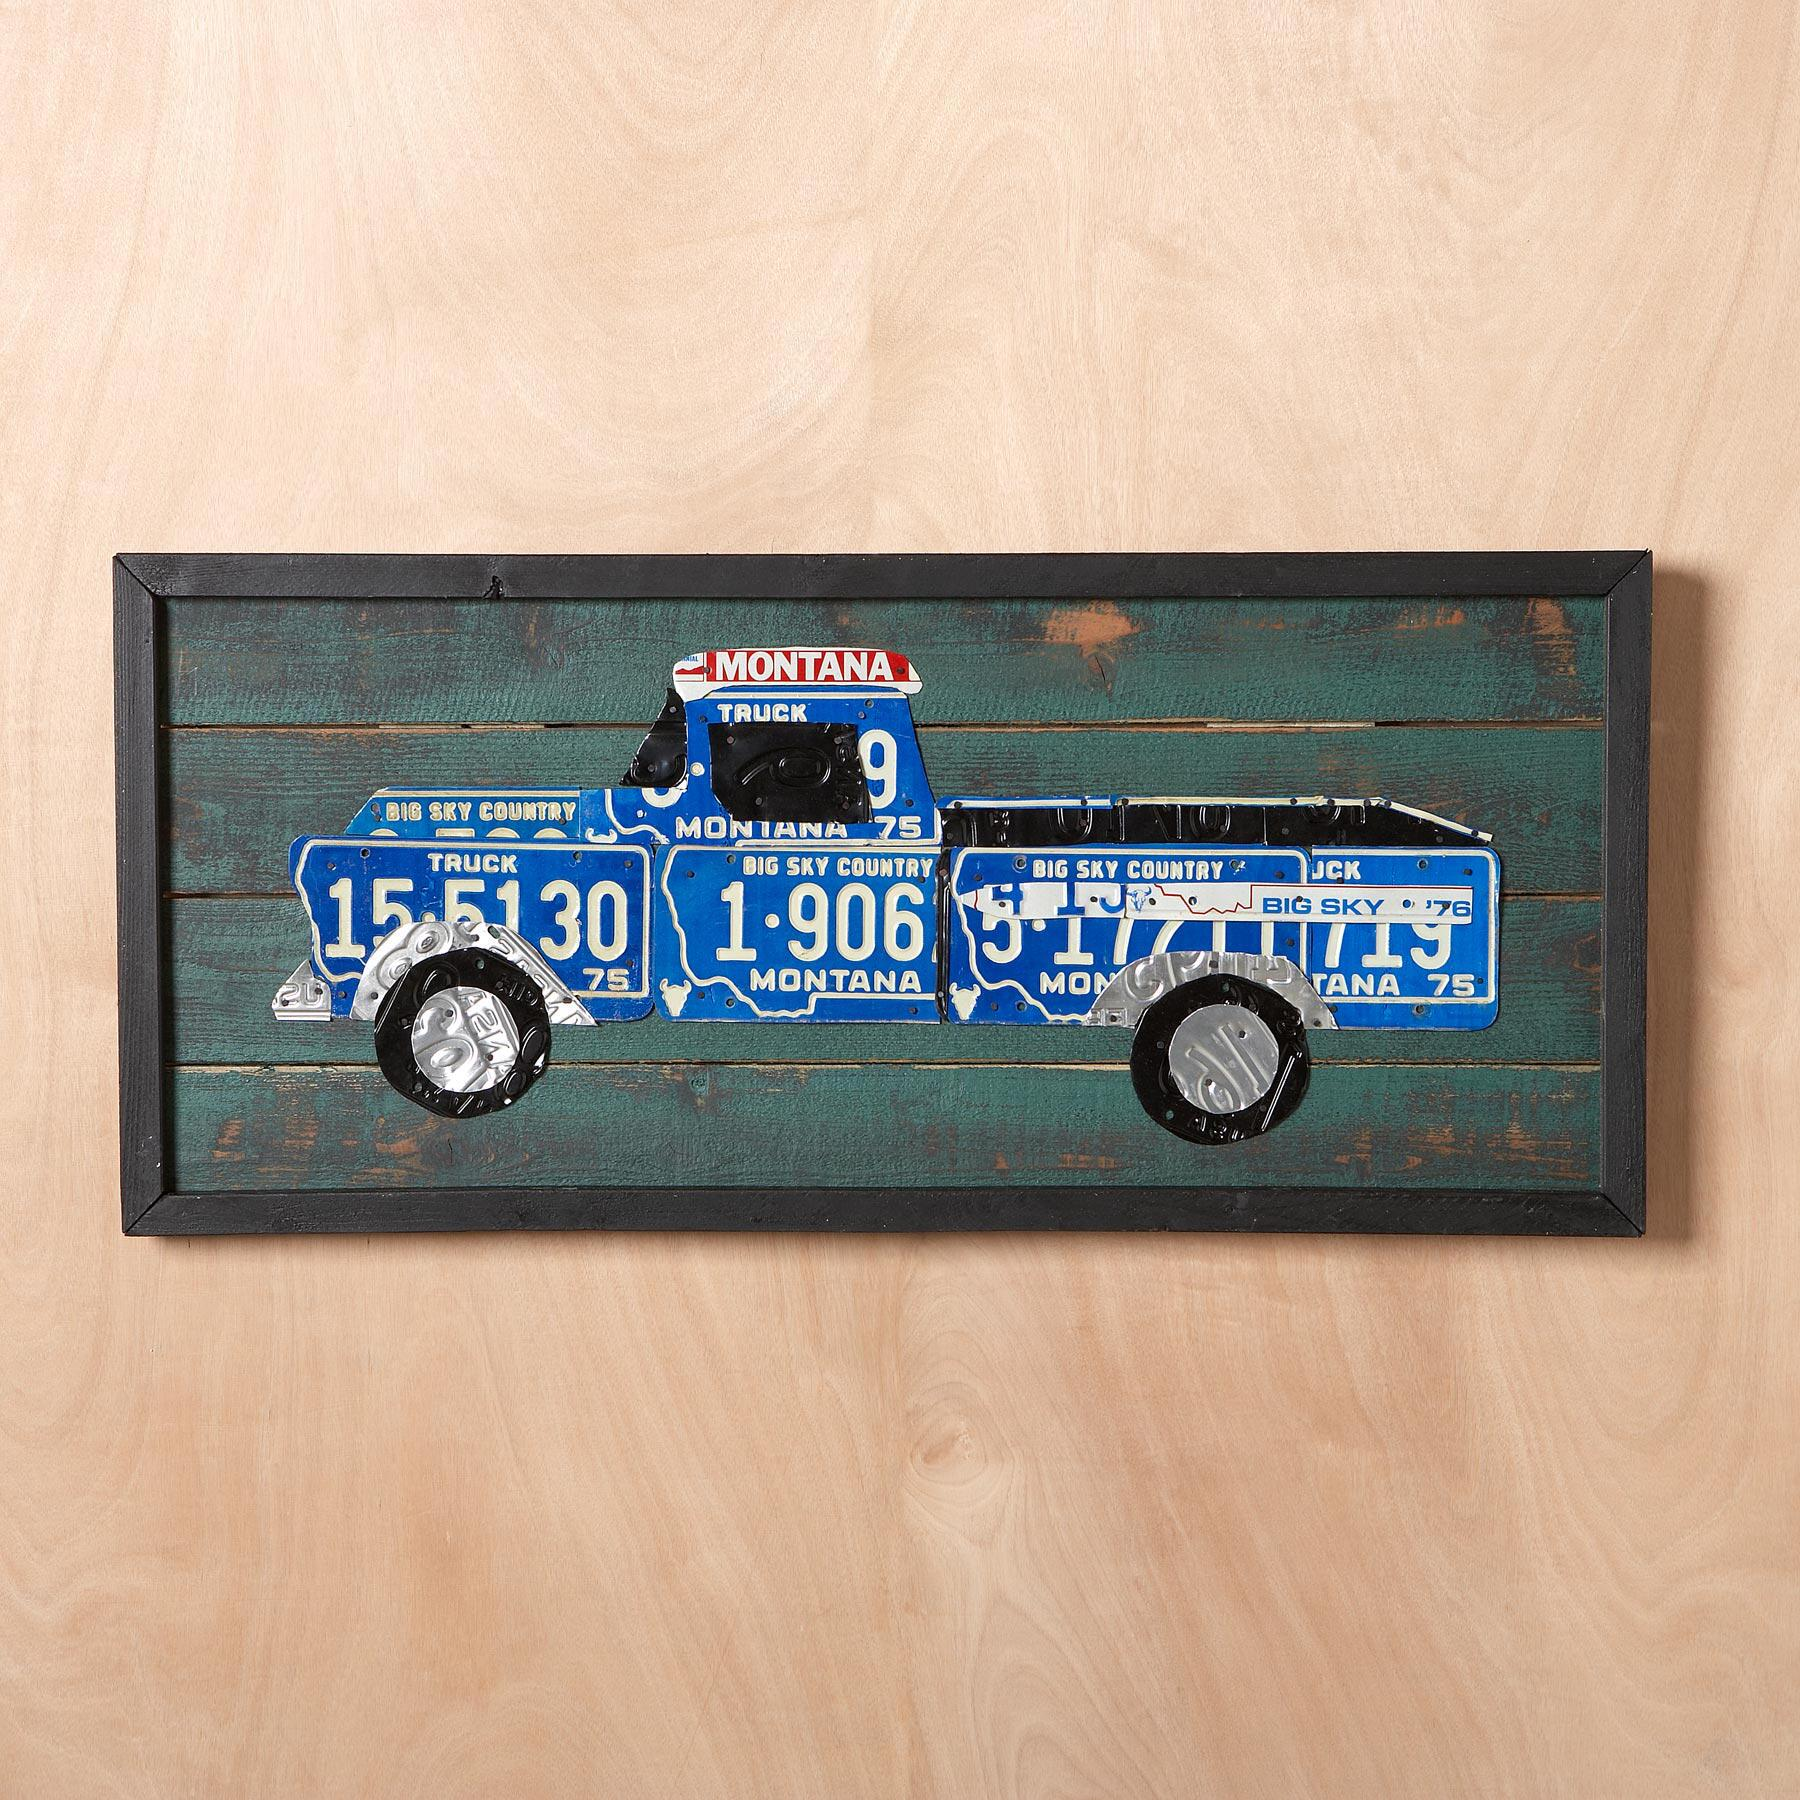 LICENSE PLATE TRUCK WALL ART: View 4